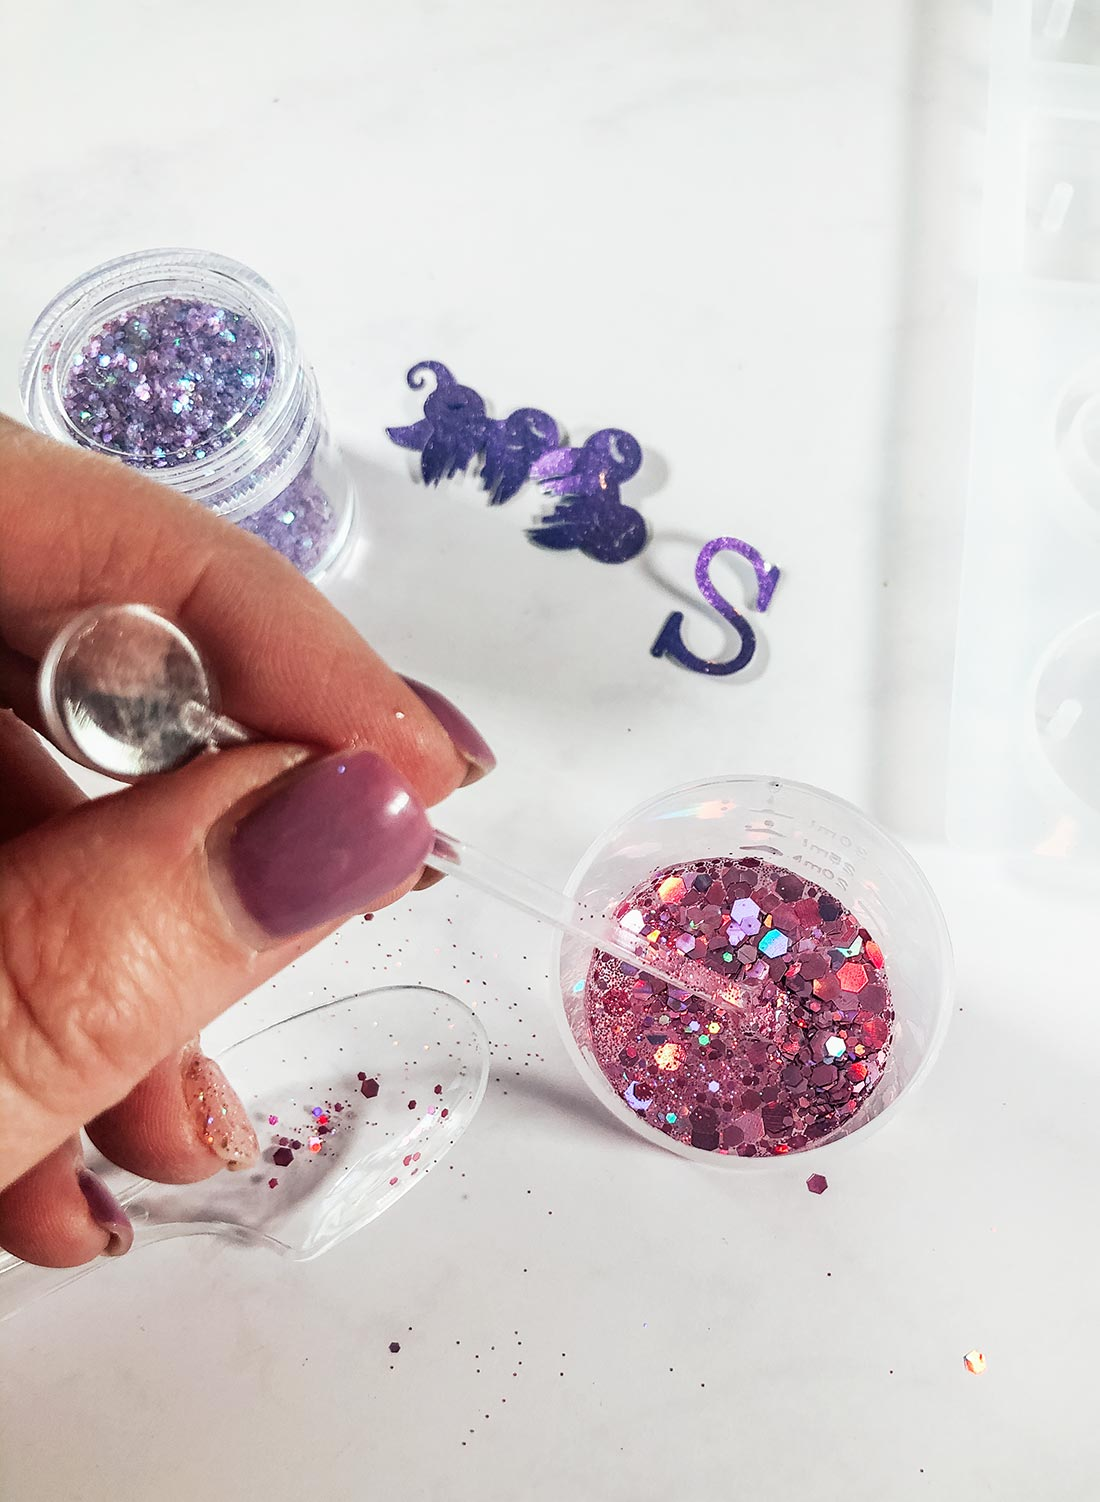 You can mix the glitter into your resin or sprinkle it in the encapsulate